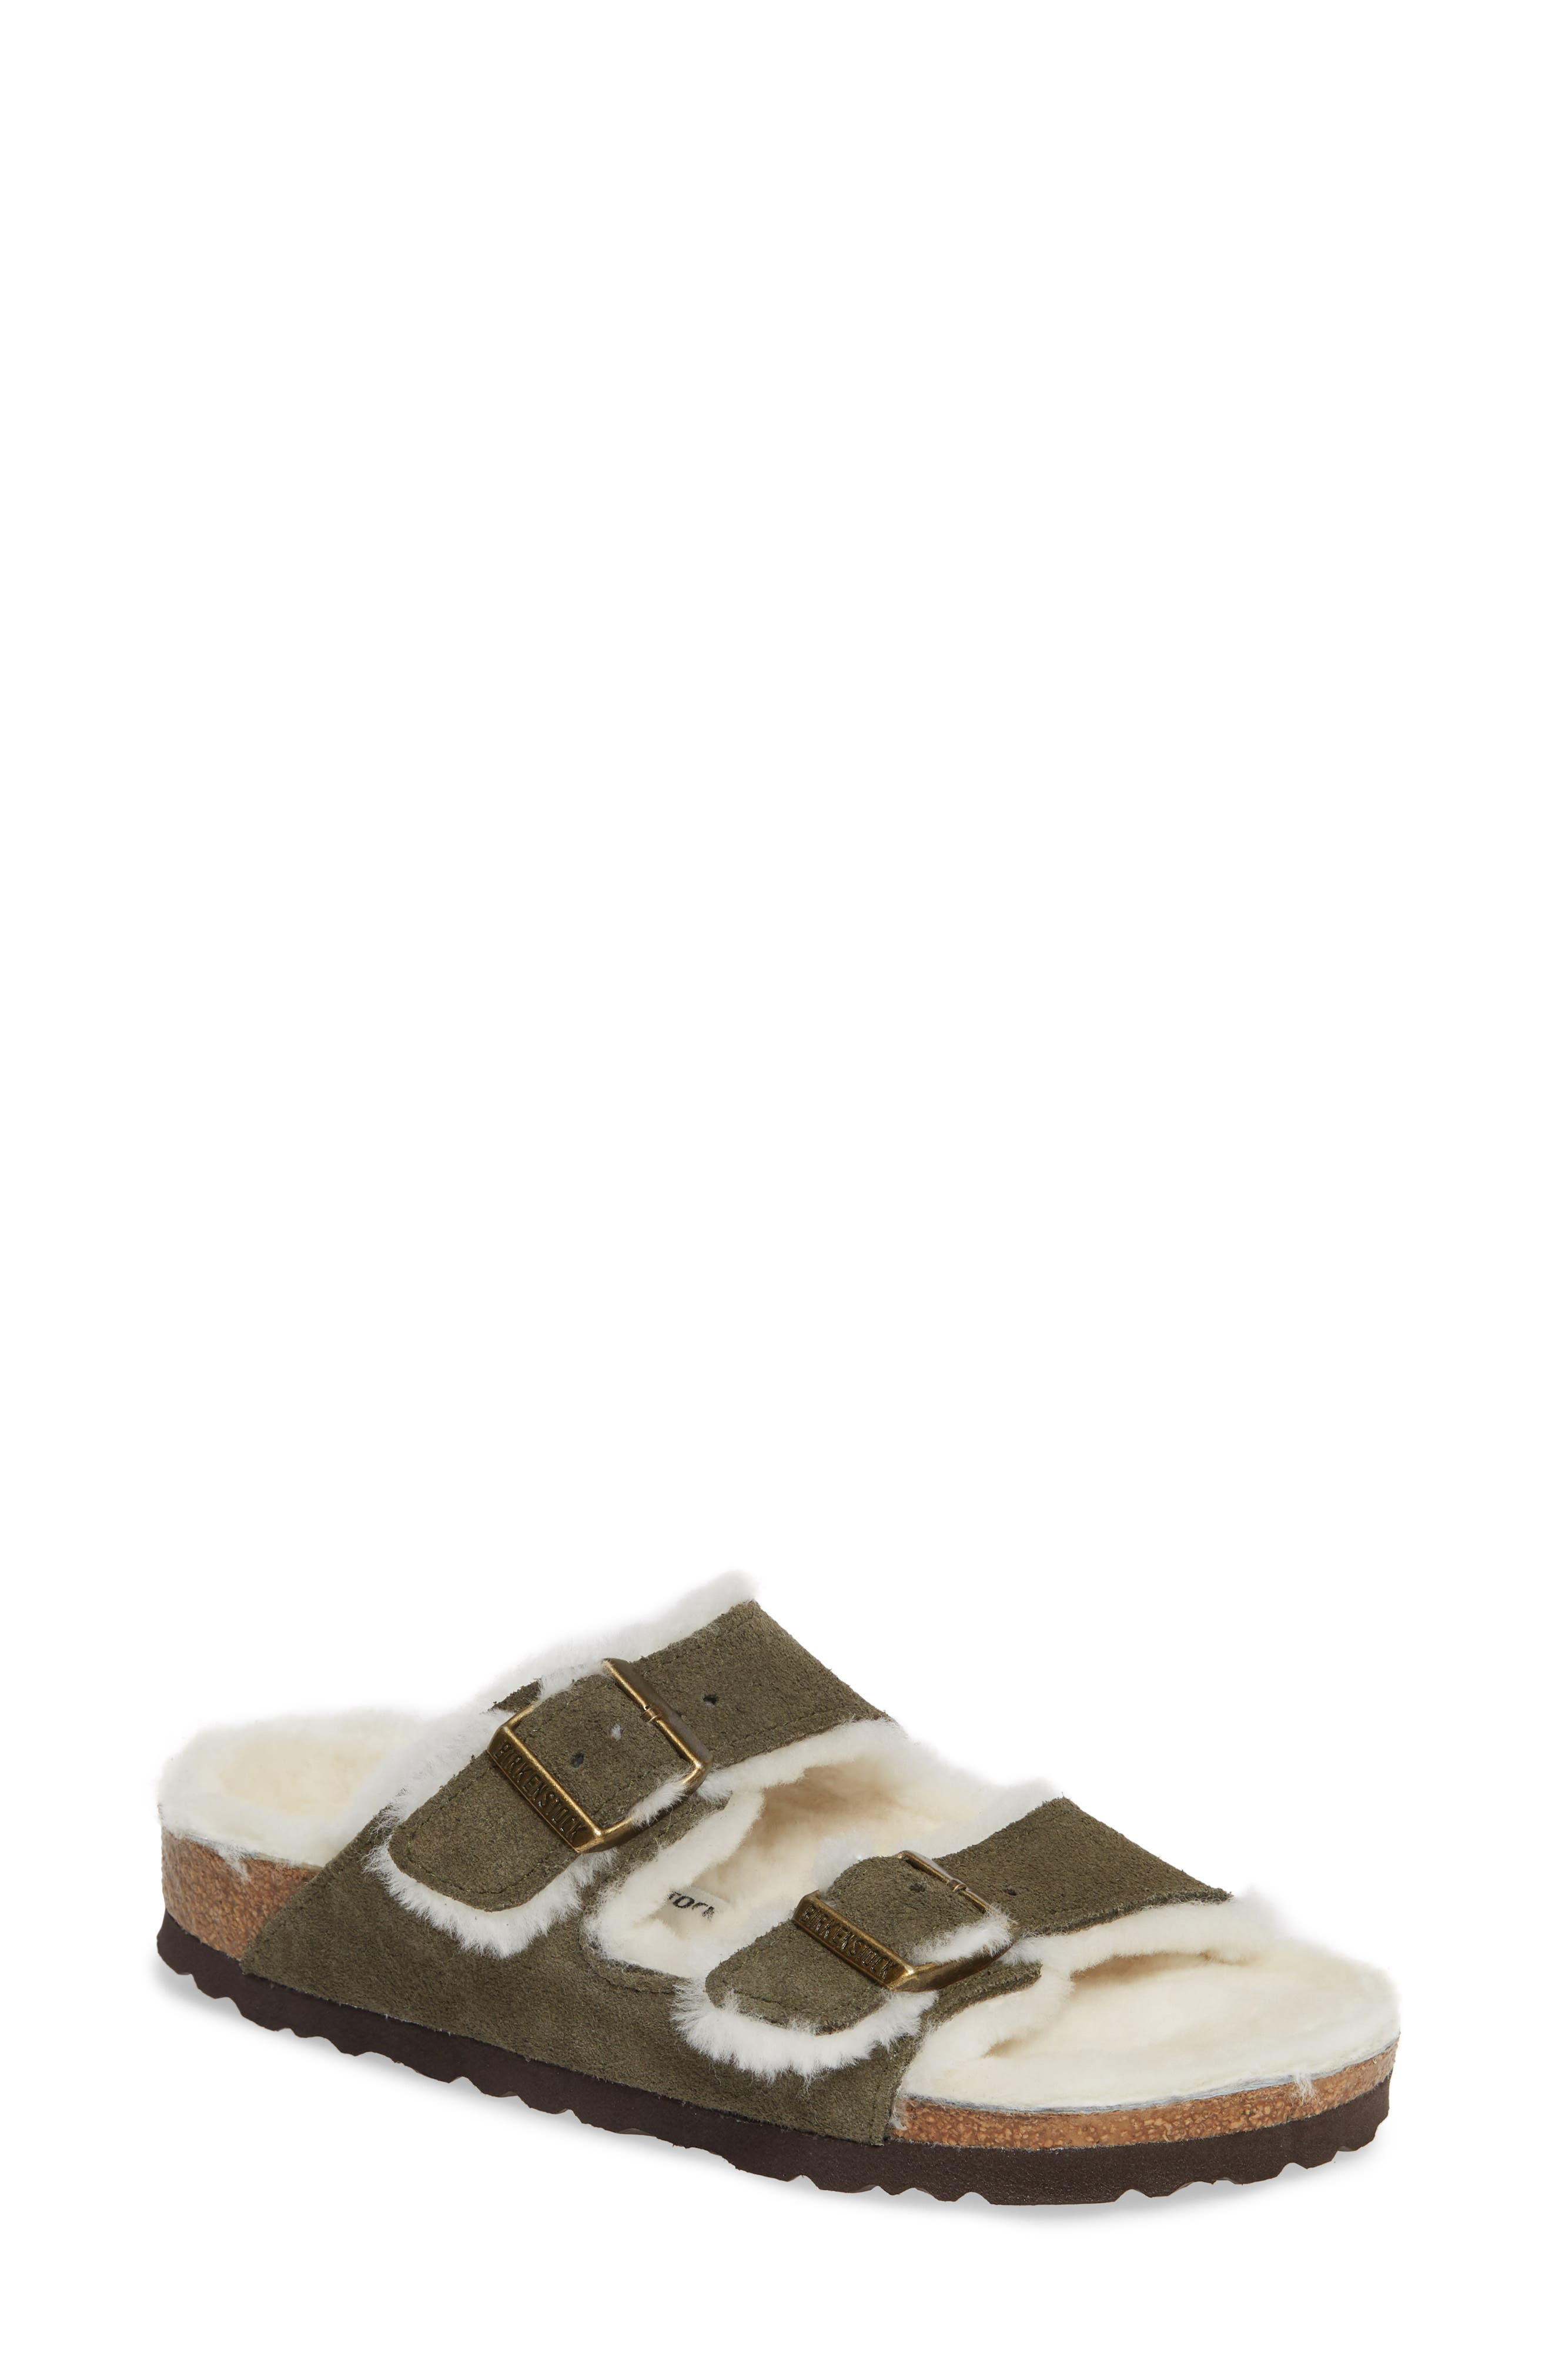 'Arizona' Genuine Shearling Lined Sandal,                         Main,                         color, 300